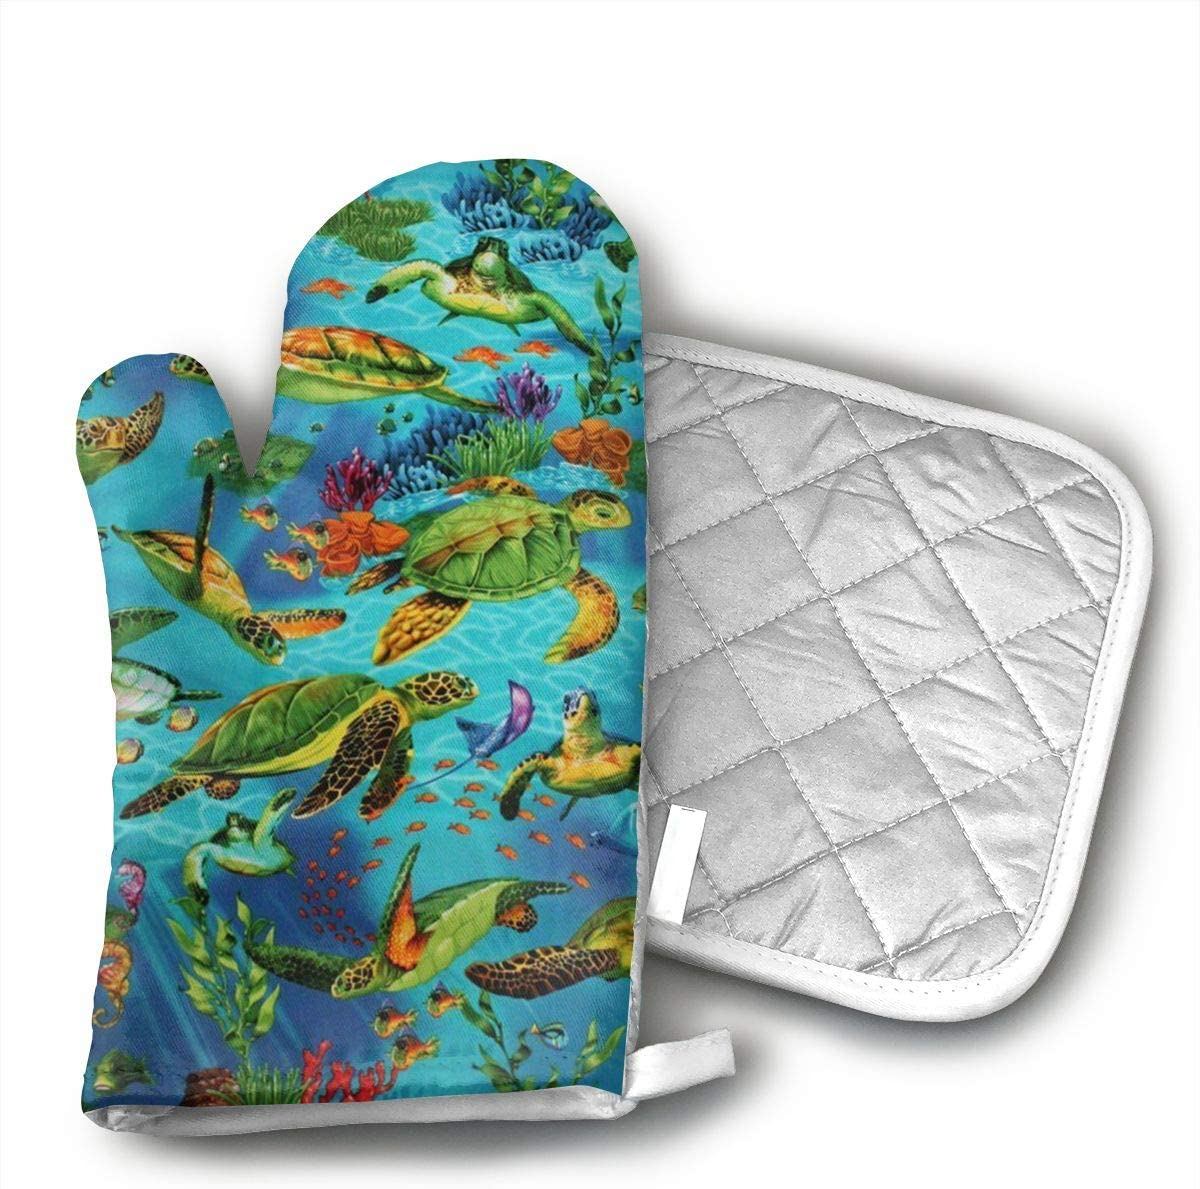 Wiqo9 Sea Turtles Swimming Underwater Ocean Fish Oven Mitts and Pot Holders Kitchen Mitten Cooking Gloves,Cooking, Baking, BBQ.